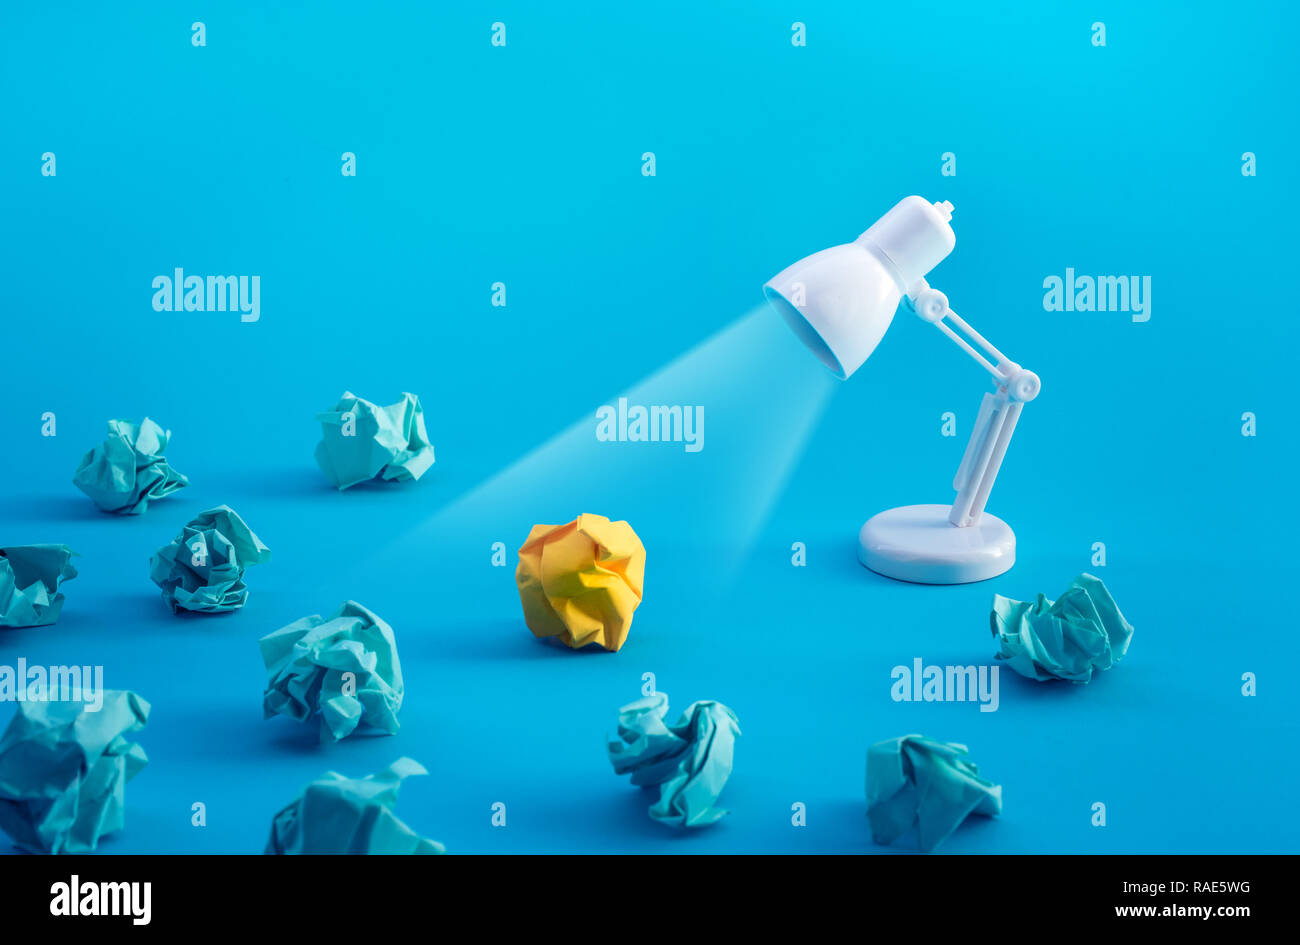 Idea and creativity concepts with paper crumpled ball and lamp.Think of box.Business solution.Outstanding images Stock Photo